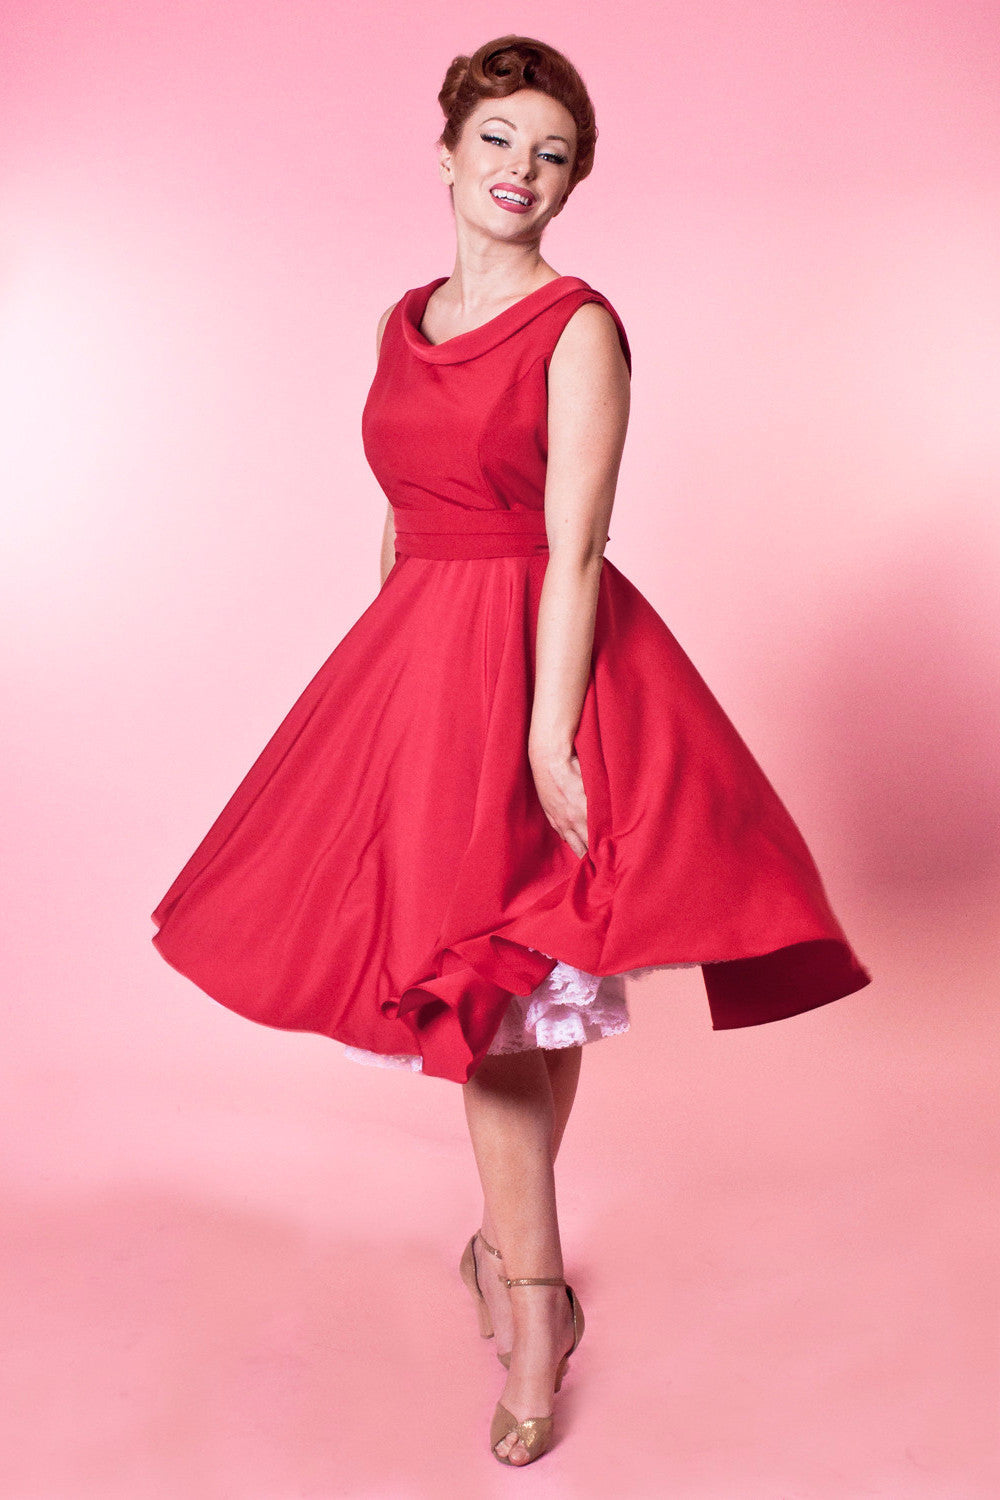 BP Suzette Dress - Tuscany Silkie Red - Heart of Haute  - 1